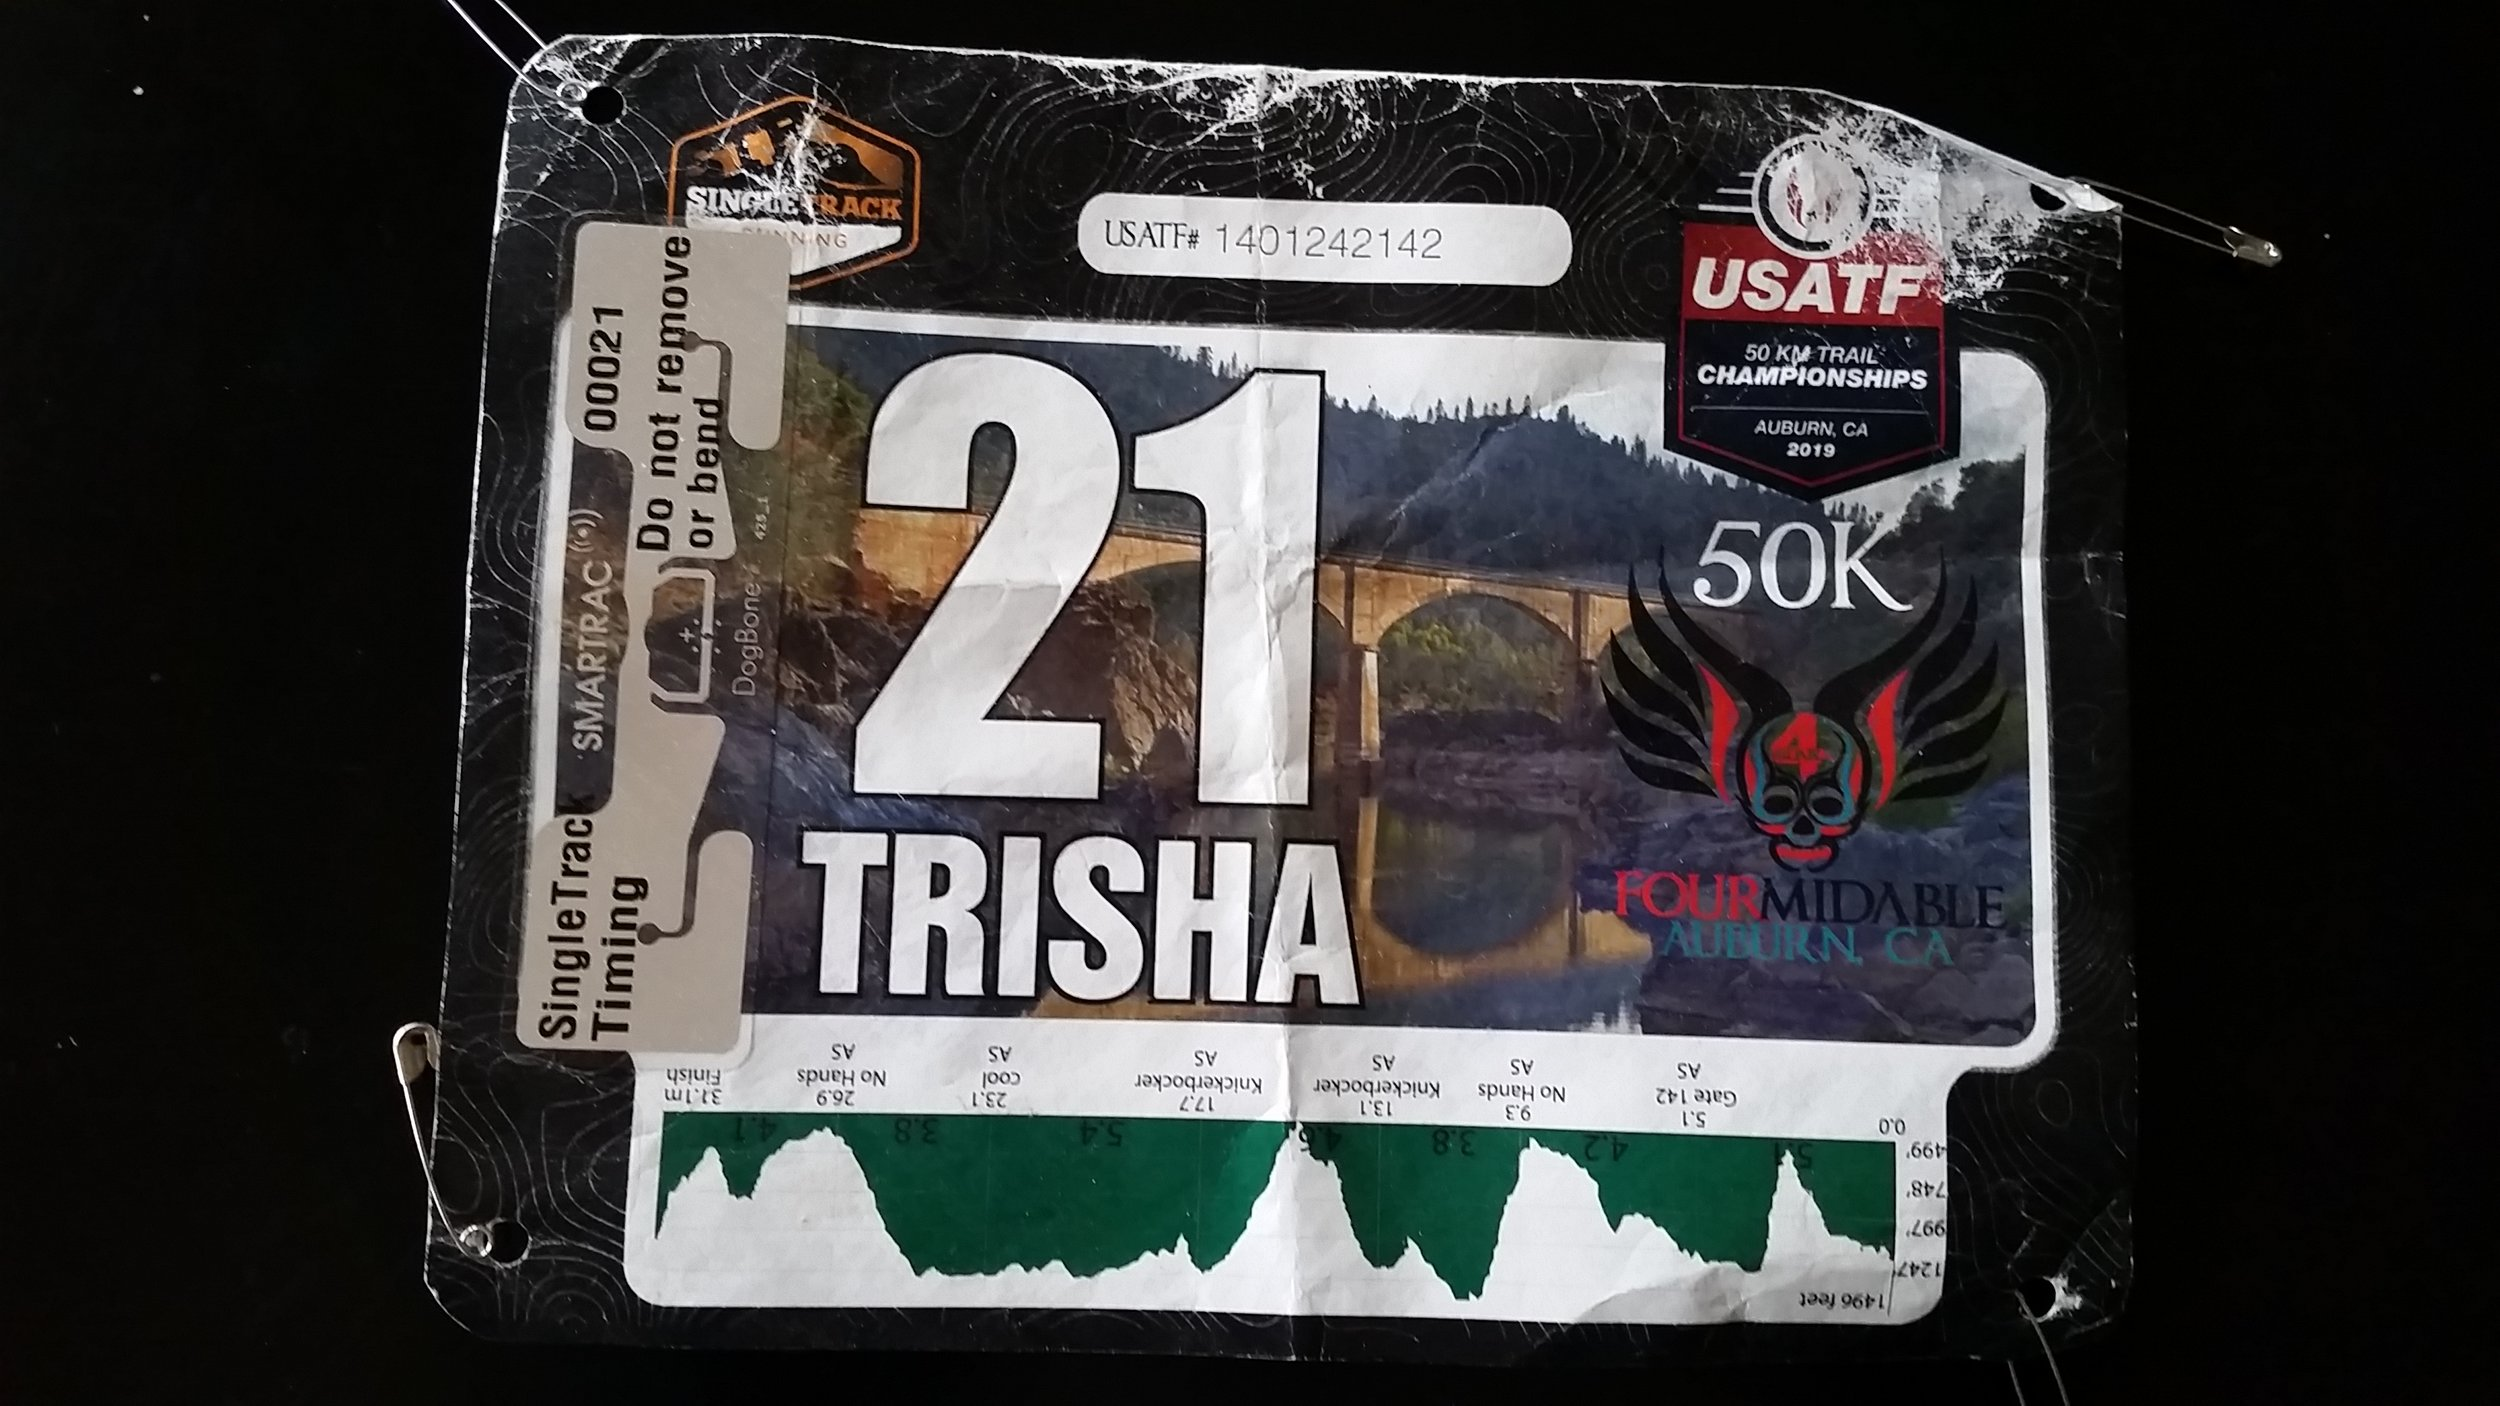 Sweet race bib